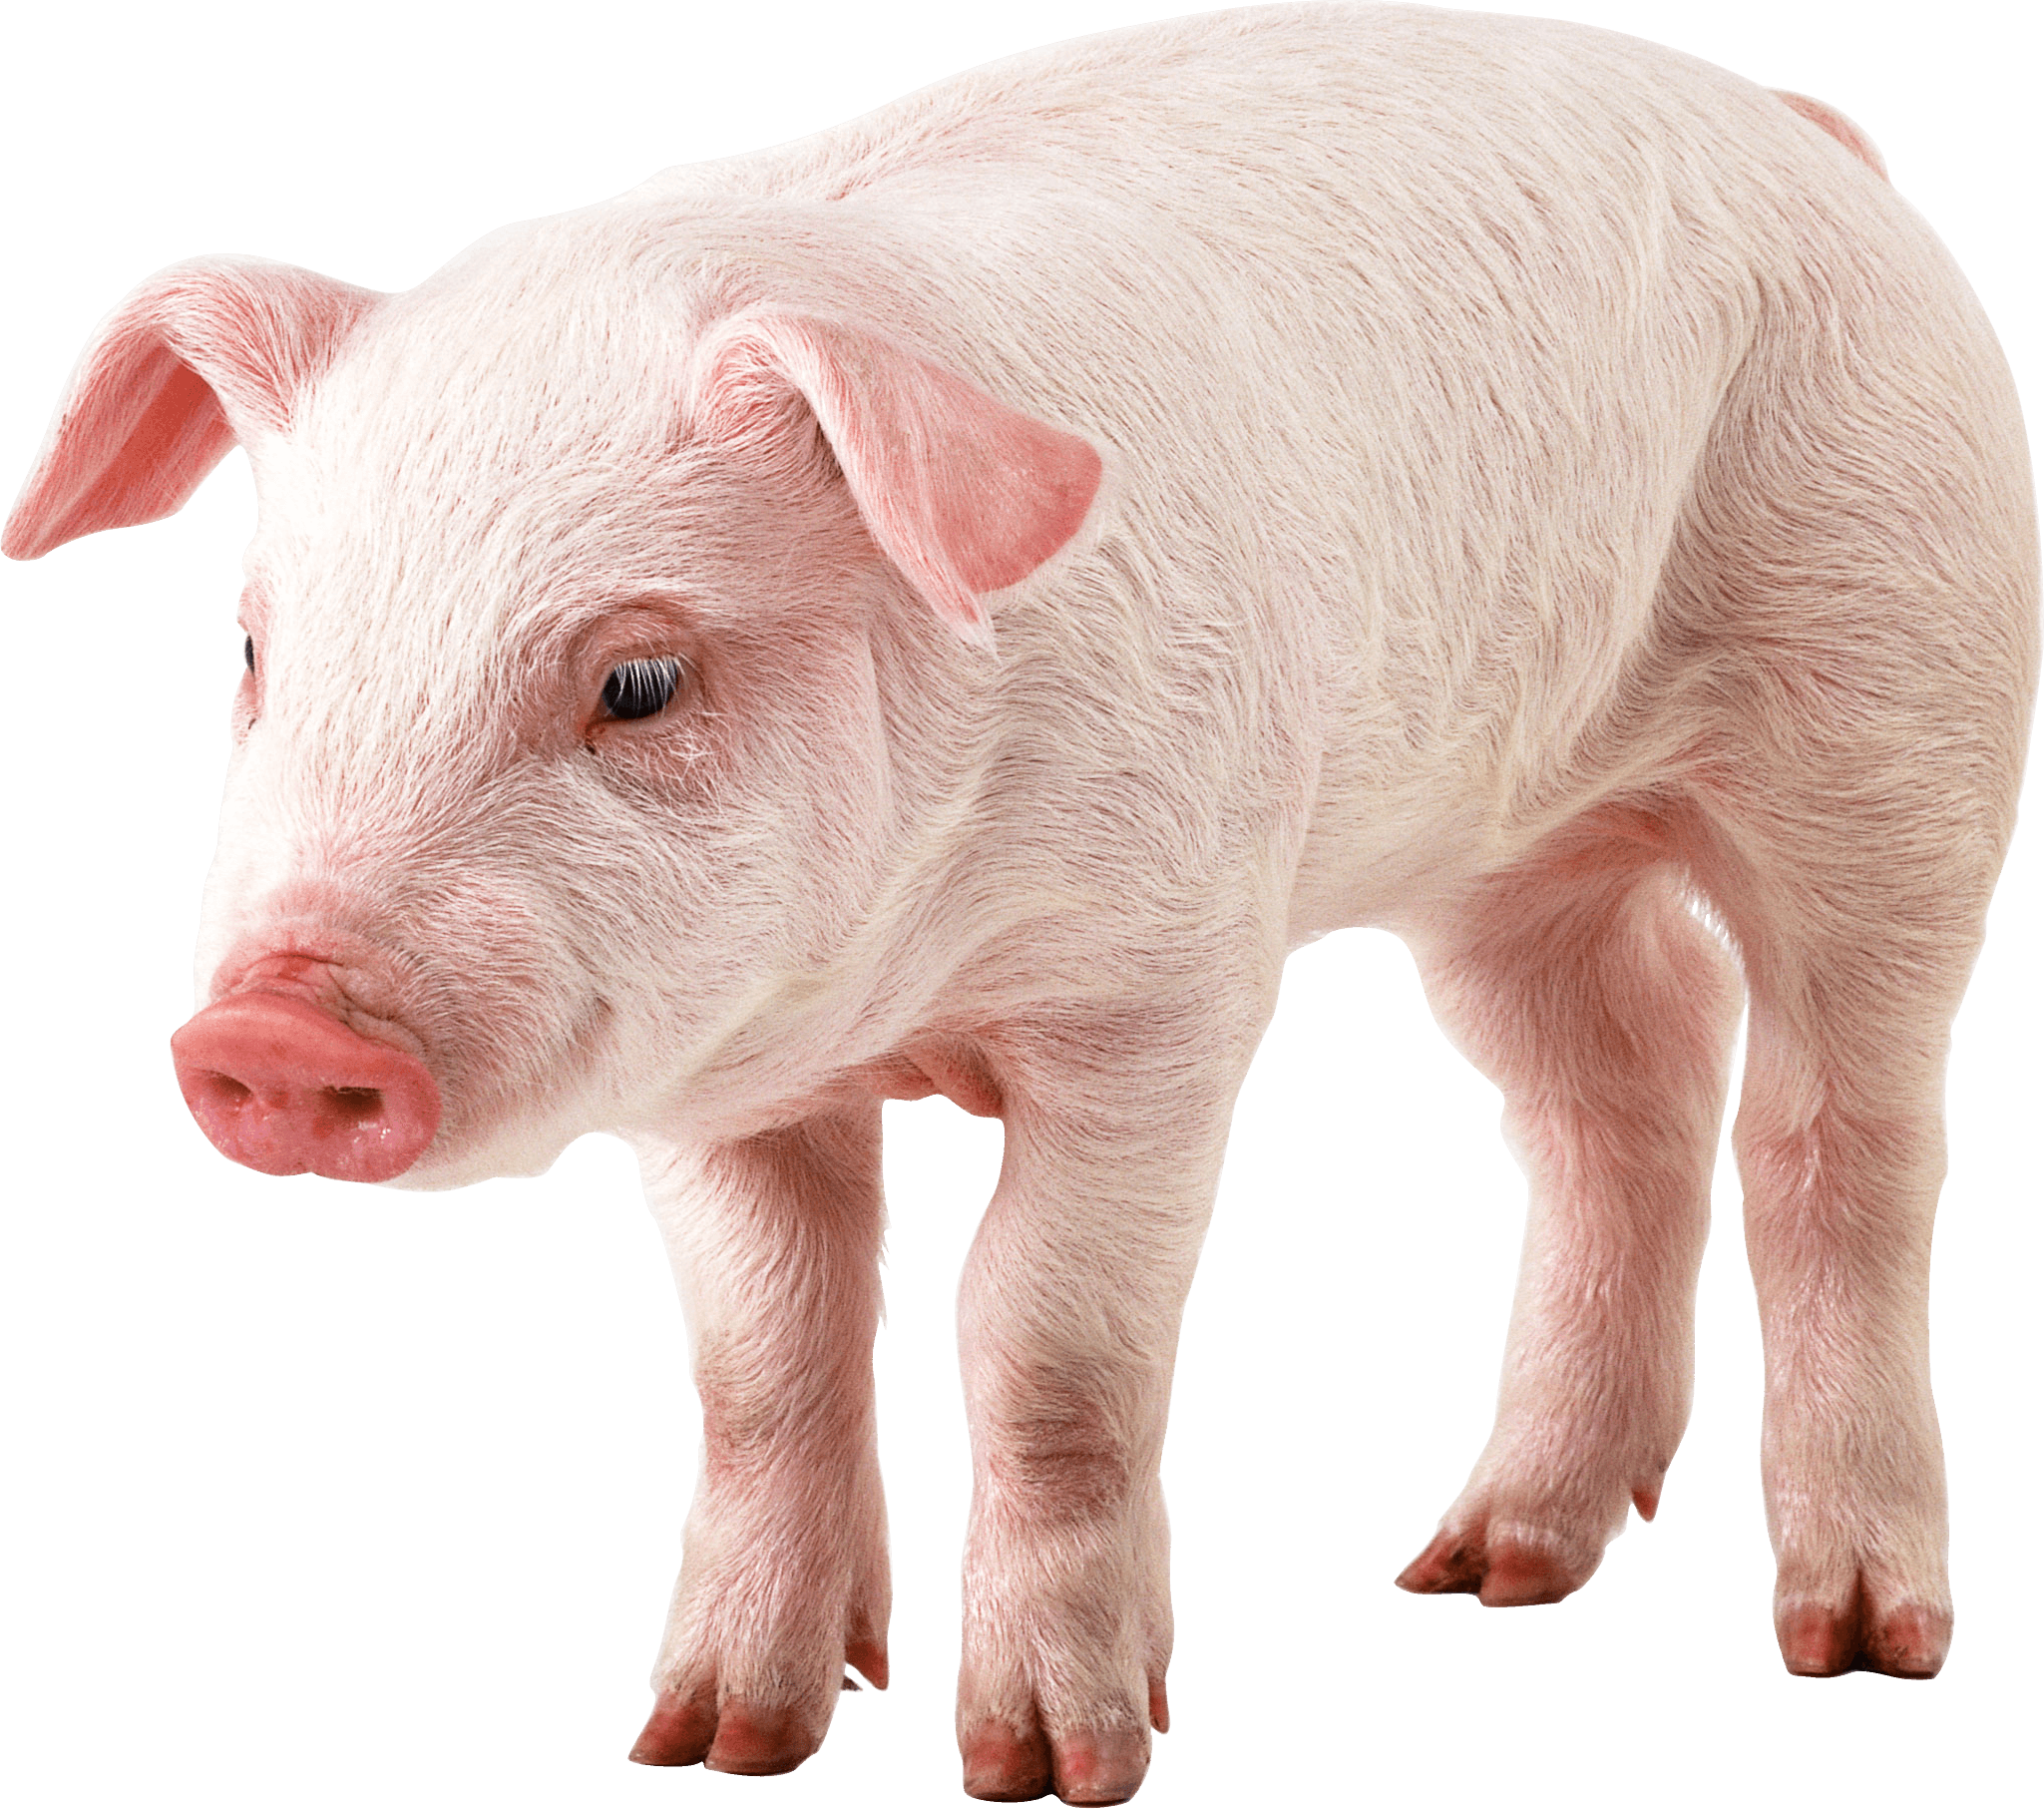 pig png image purepng free transparent cc0 png image cute pig clip art black and white cute pig clipart free